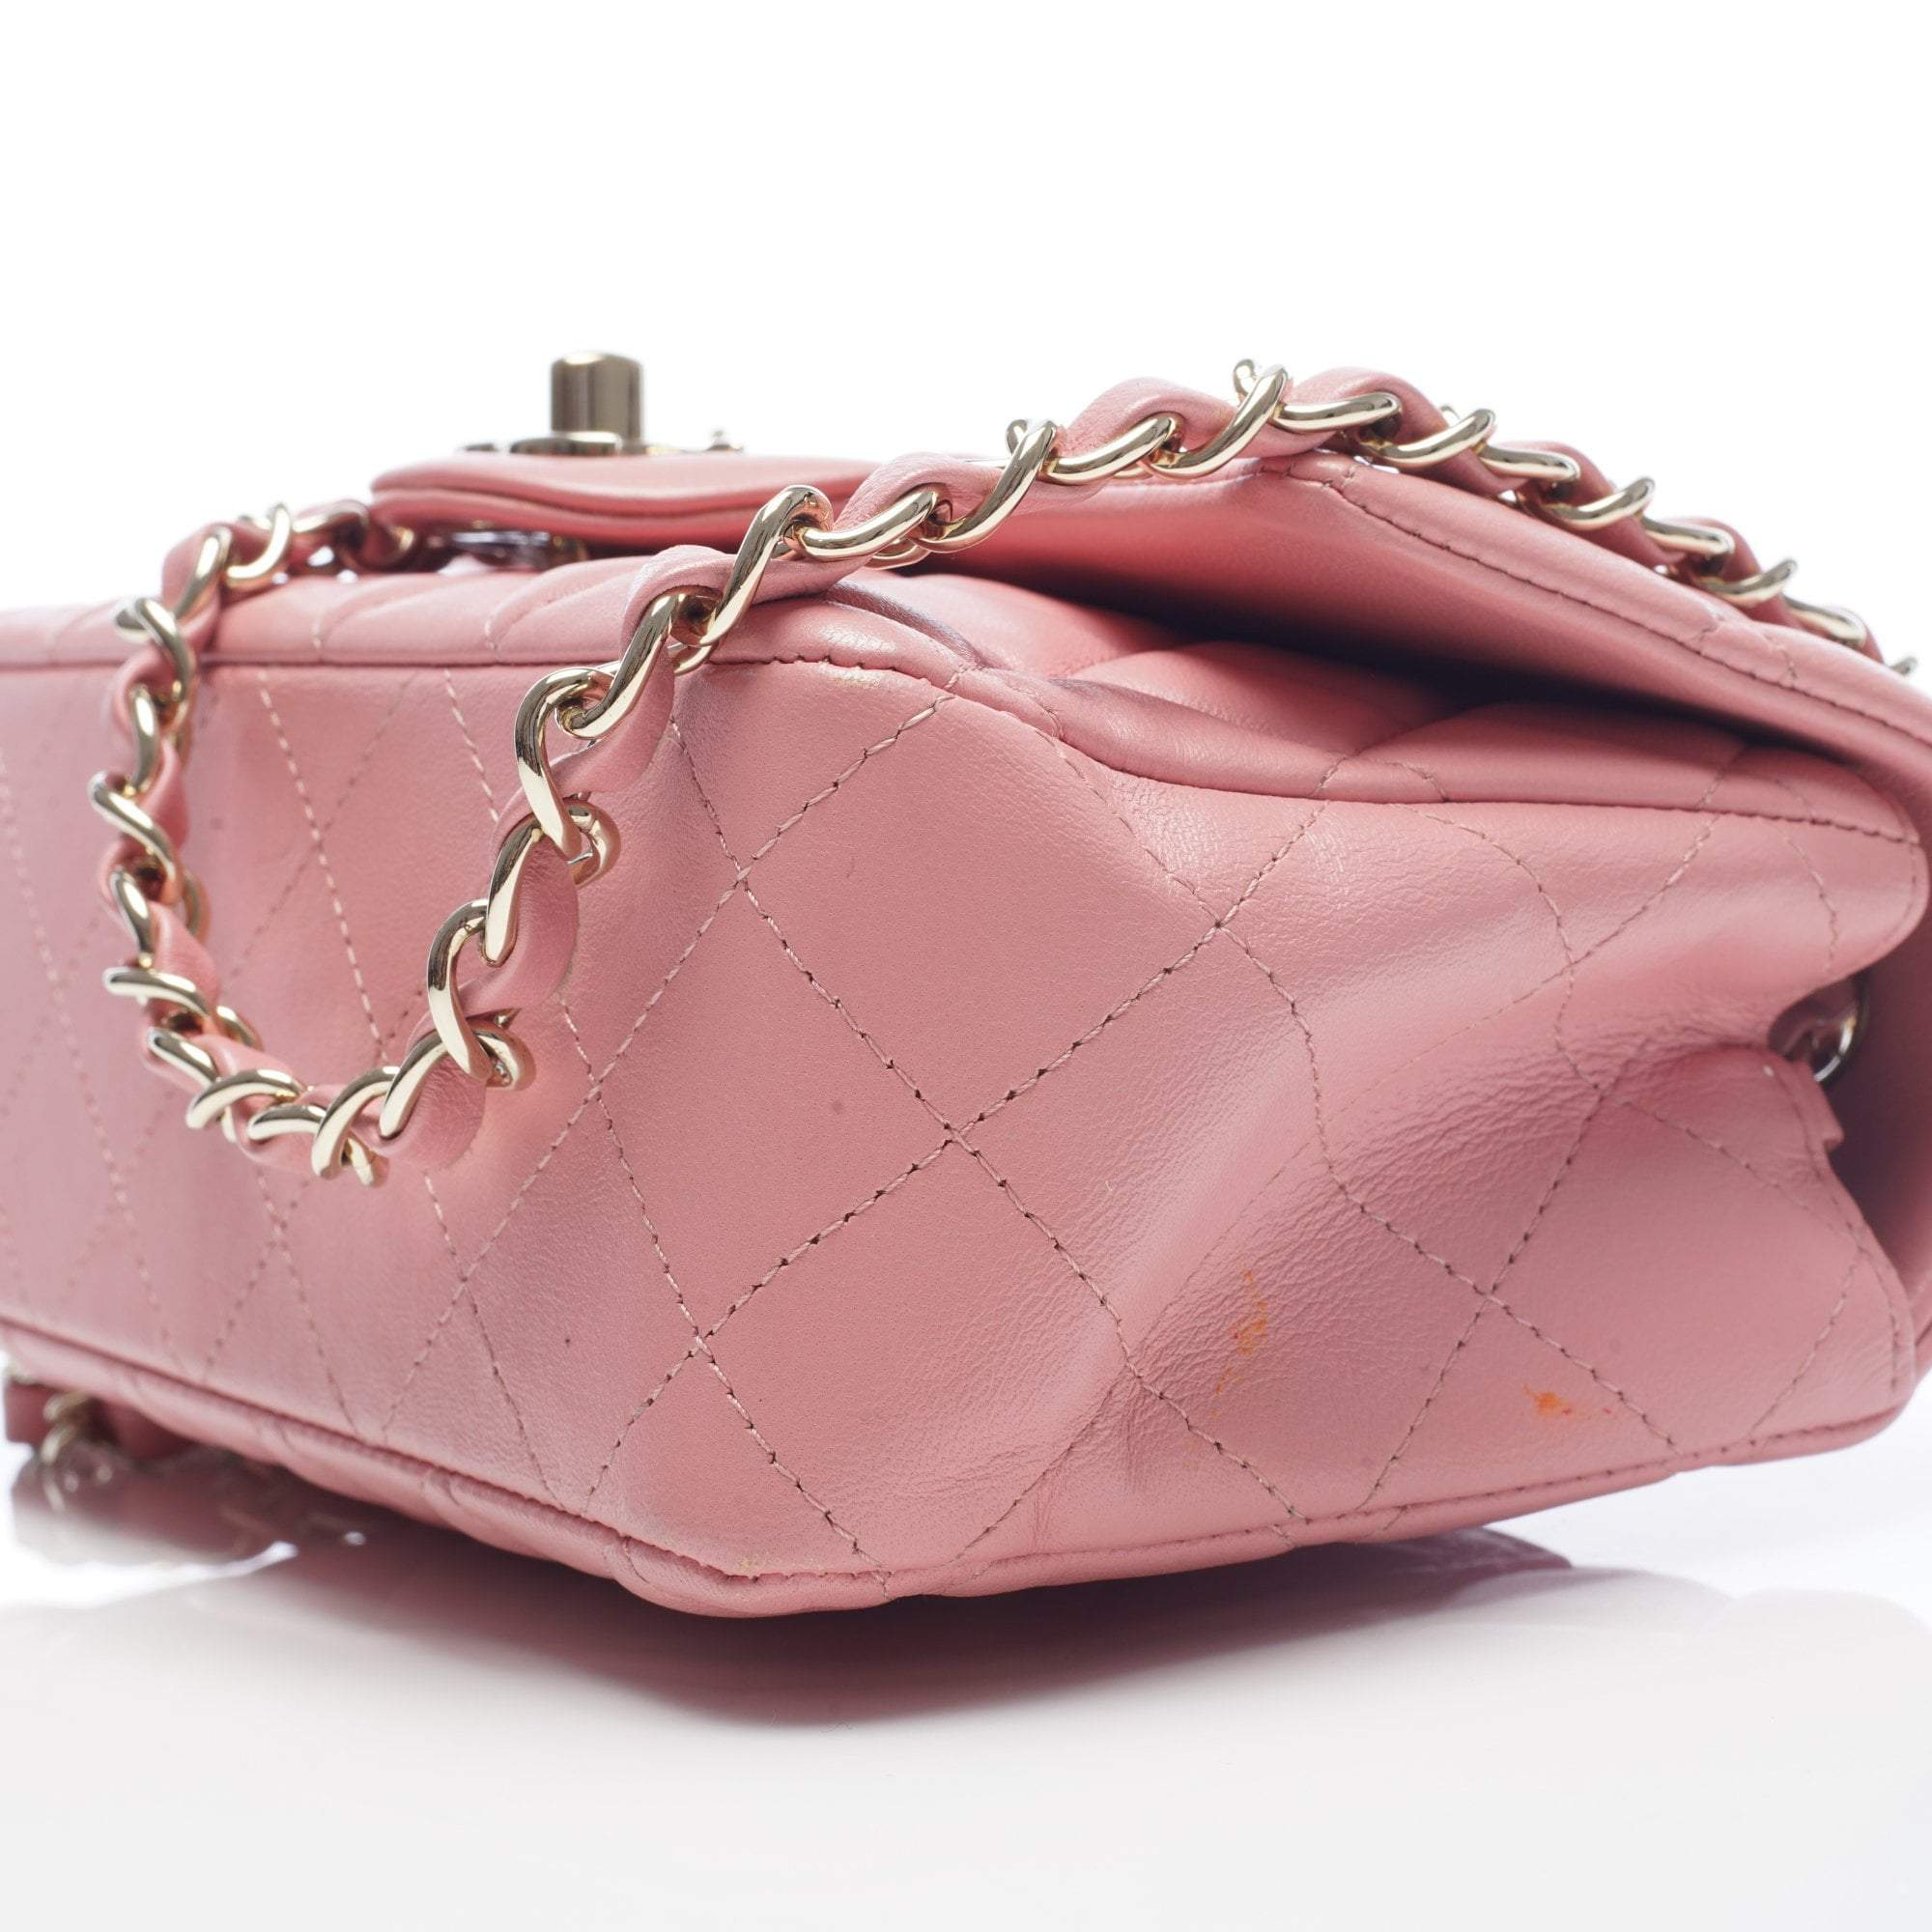 Chanel Lambskin Small Pink Flap Bag